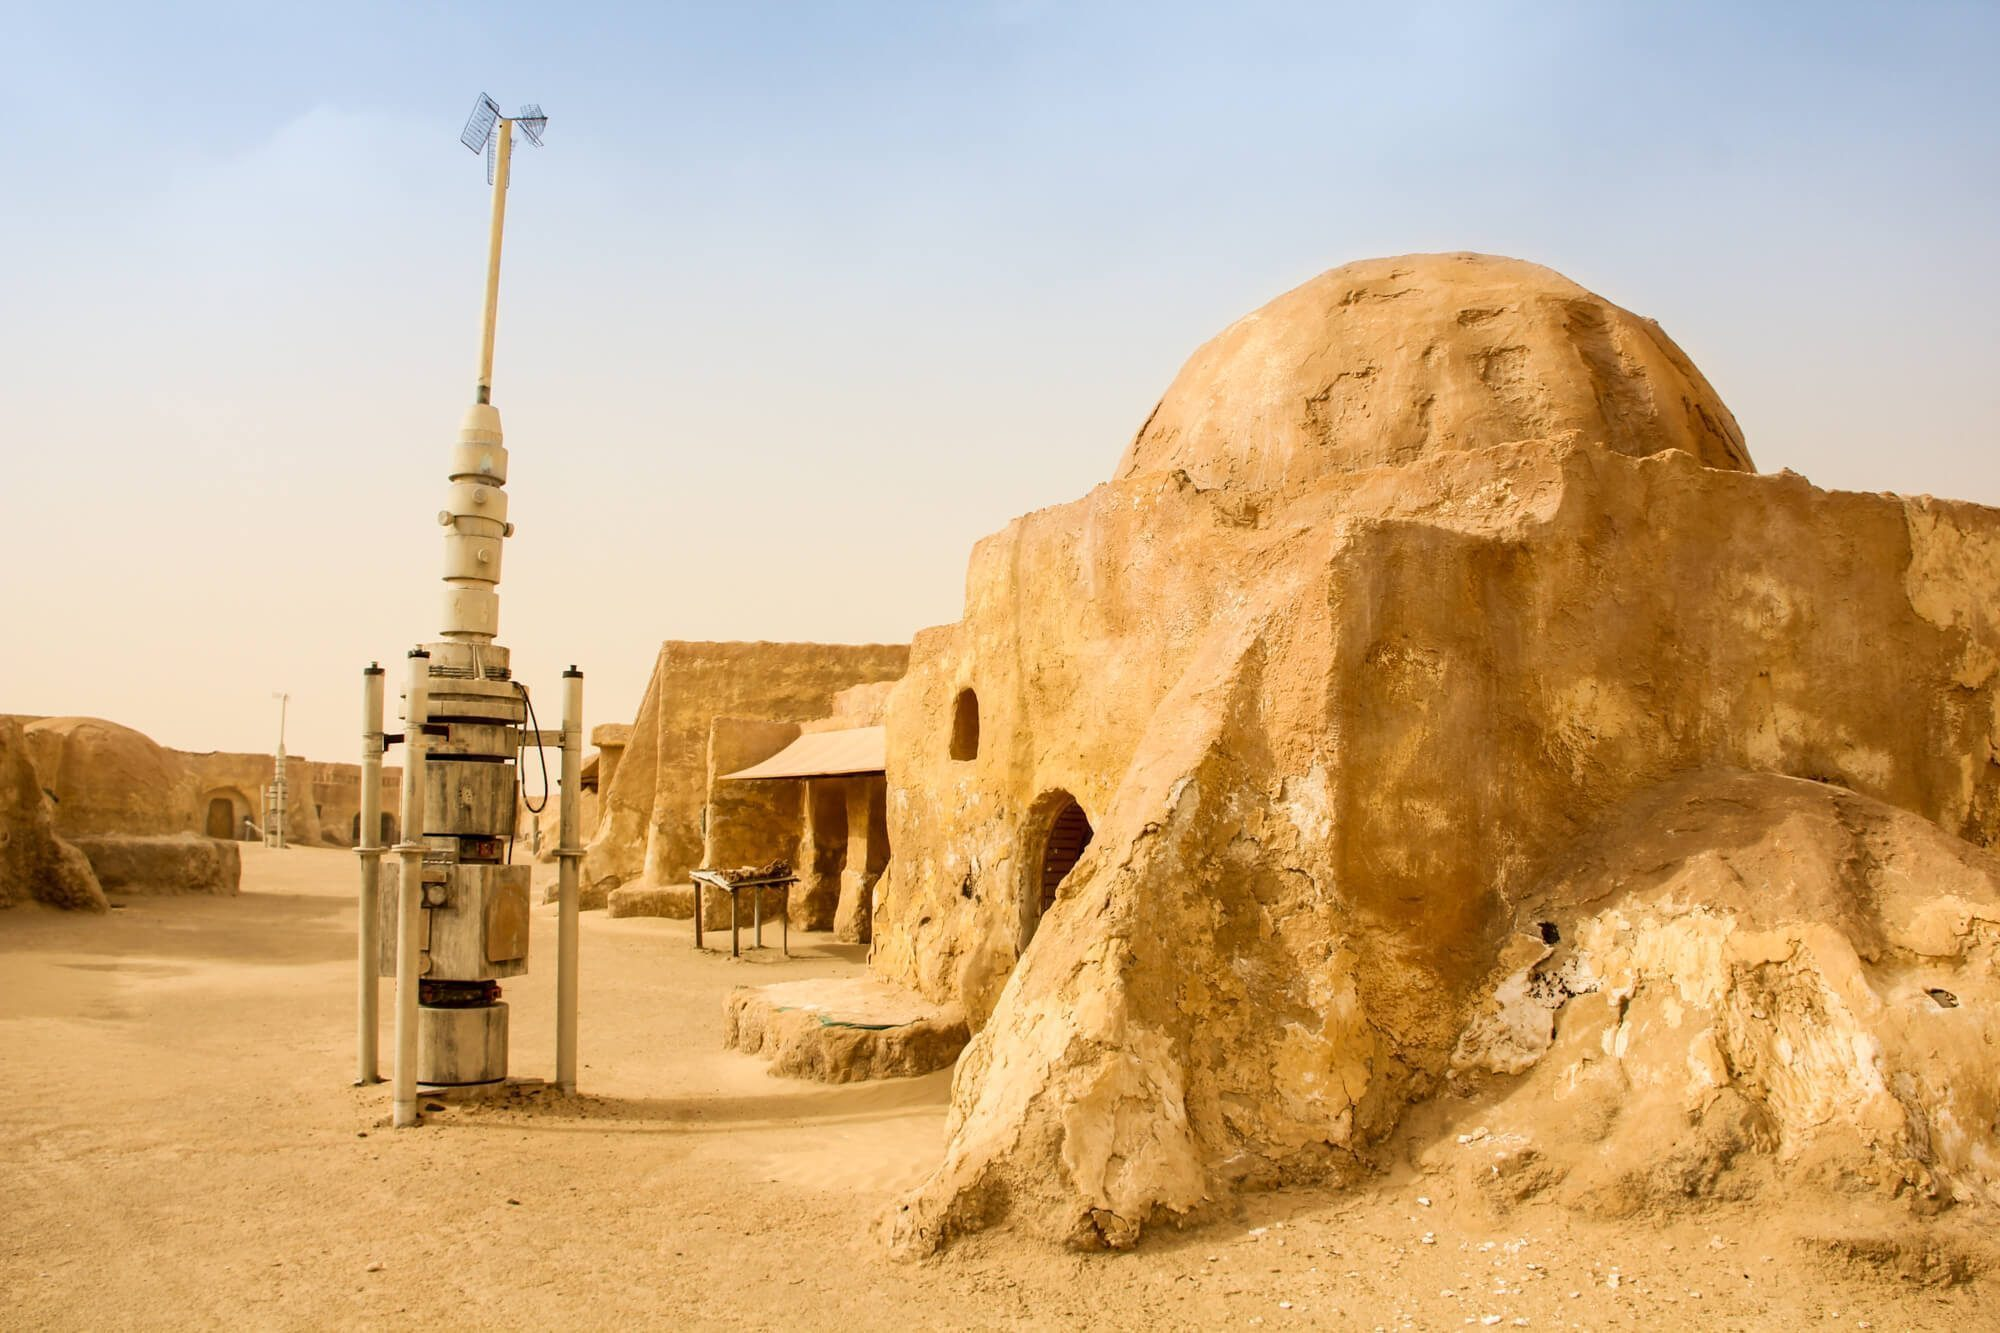 Star Wars Mos Espa Set in Tunisia